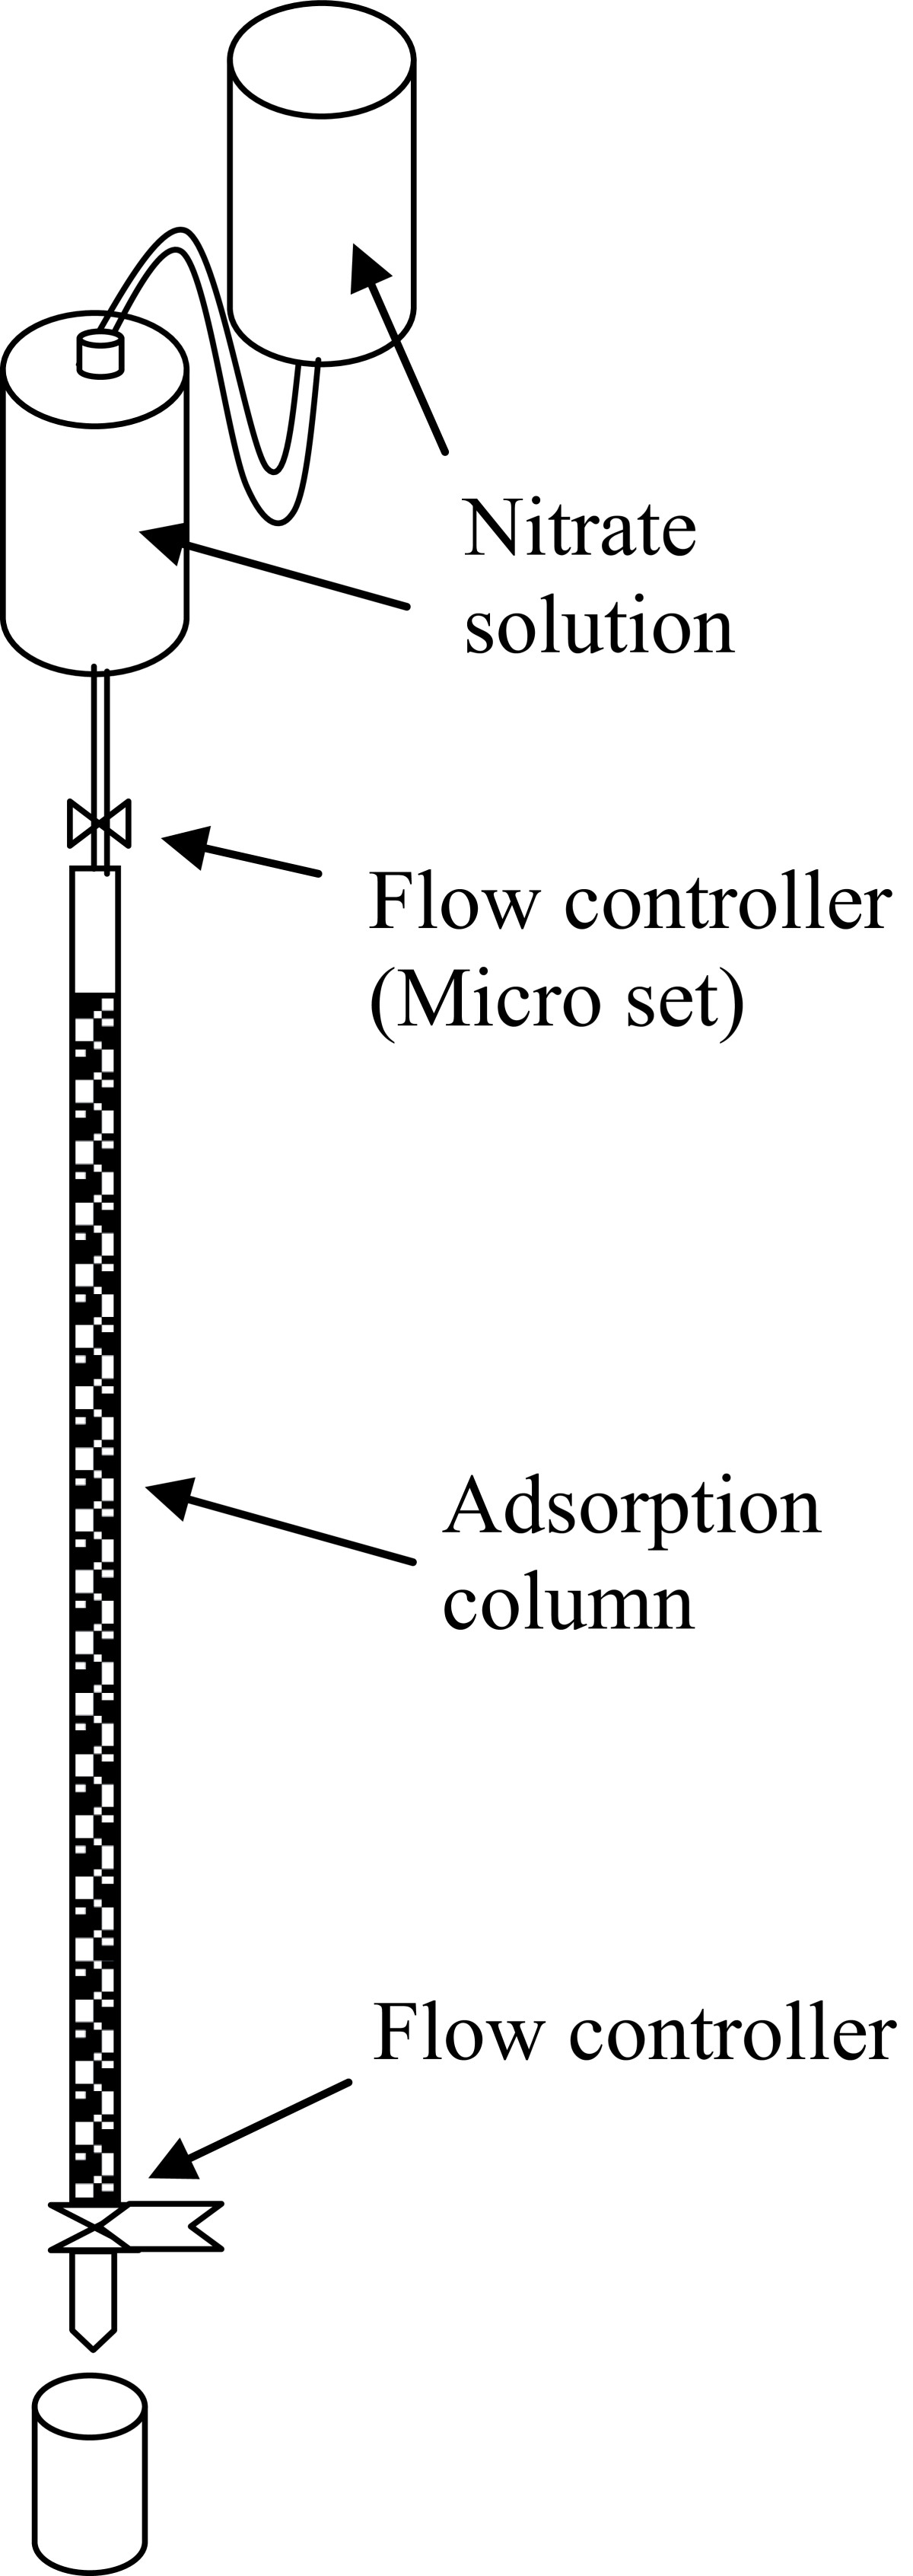 https://static-content.springer.com/image/art%3A10.1186%2F2052-336X-12-90/MediaObjects/40201_2014_Article_5109_Fig1_HTML.jpg